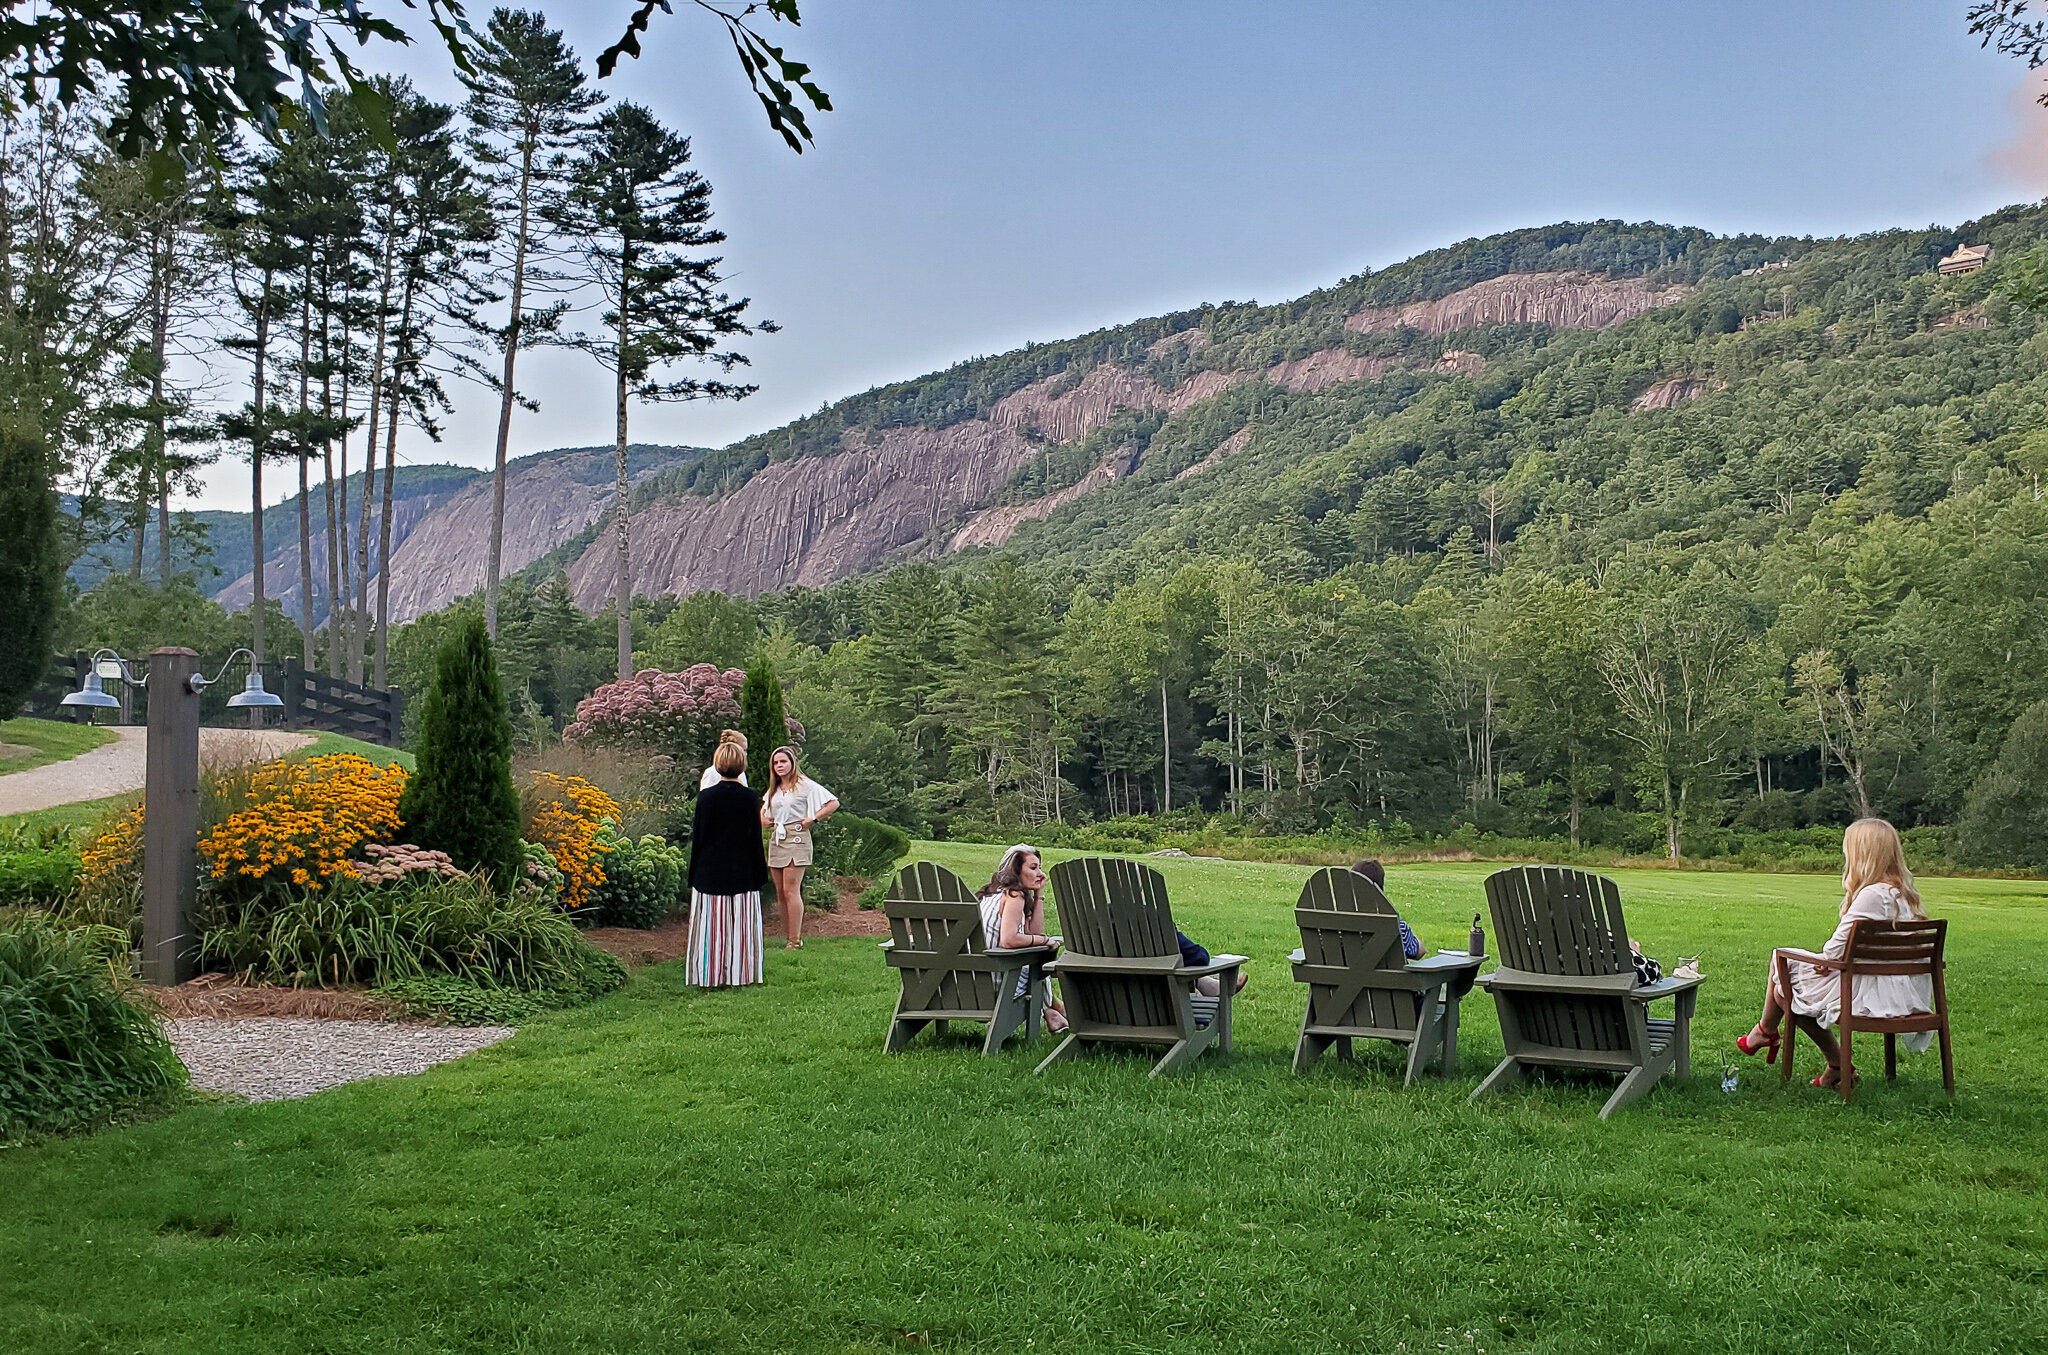 The views from the lawn of Canyon Kitchen near Cashiers, North Carolina (c) Anna Lanfreschi